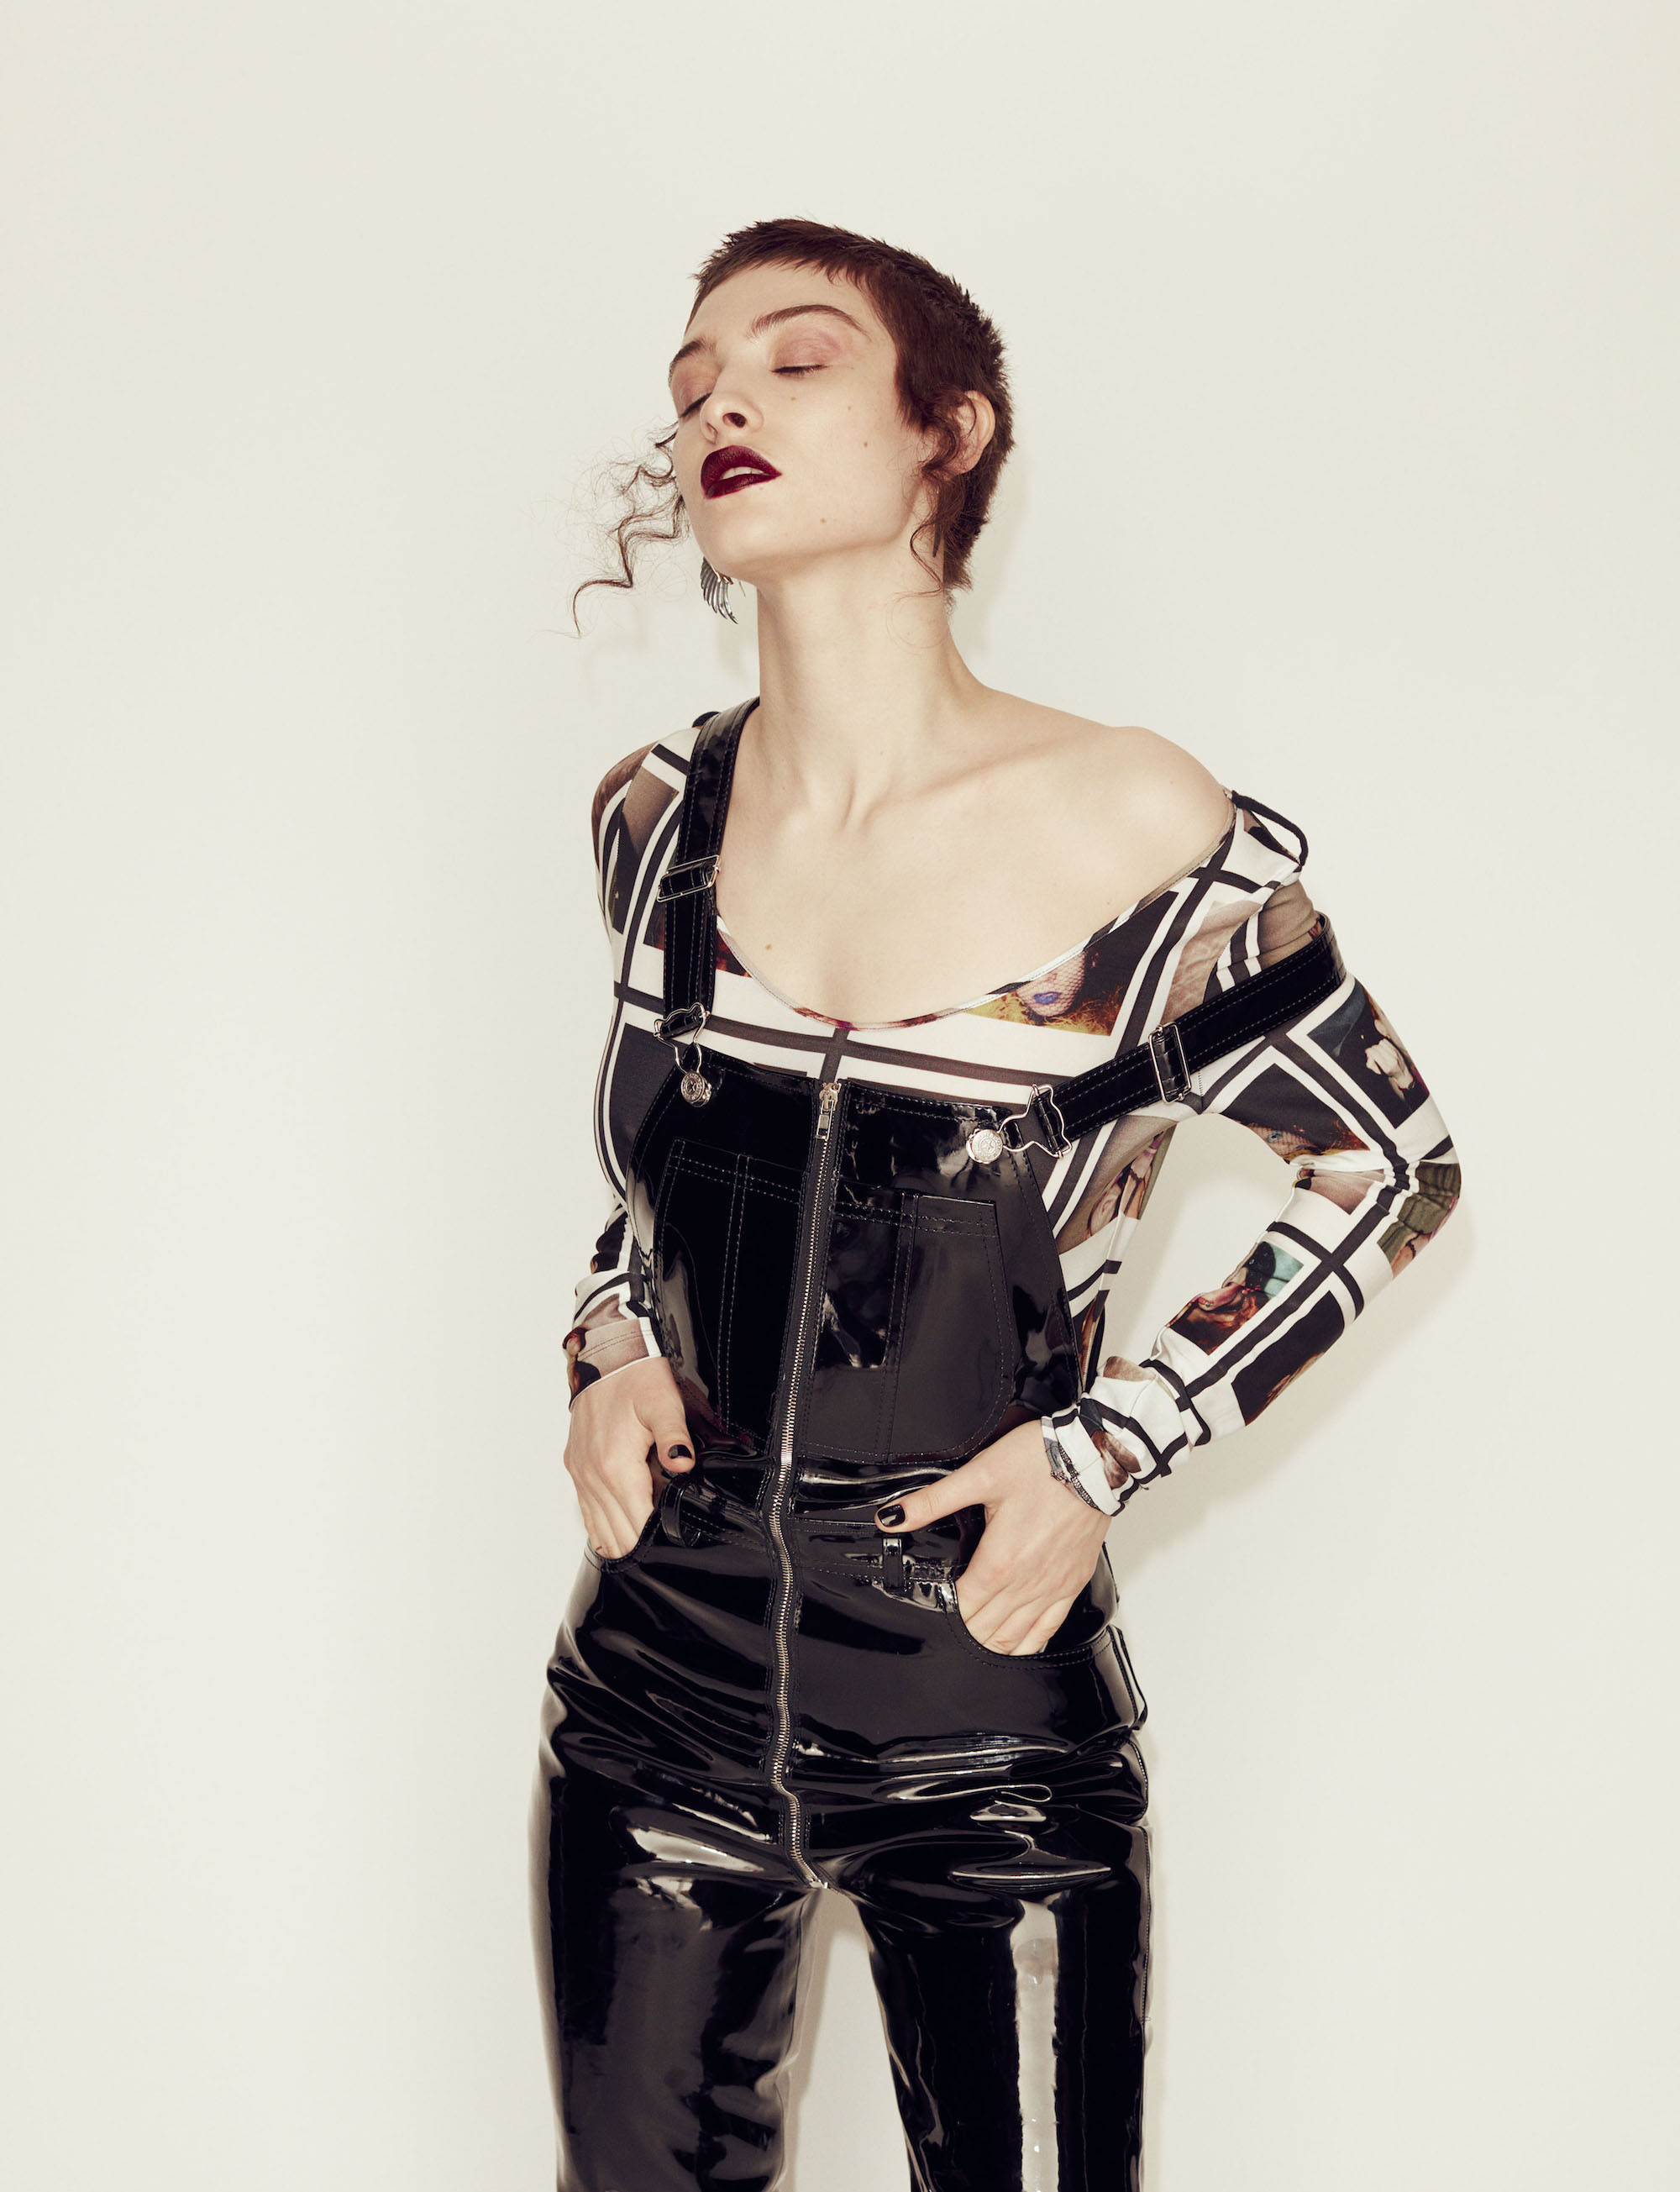 Metal Guru fashion editorial dungarees